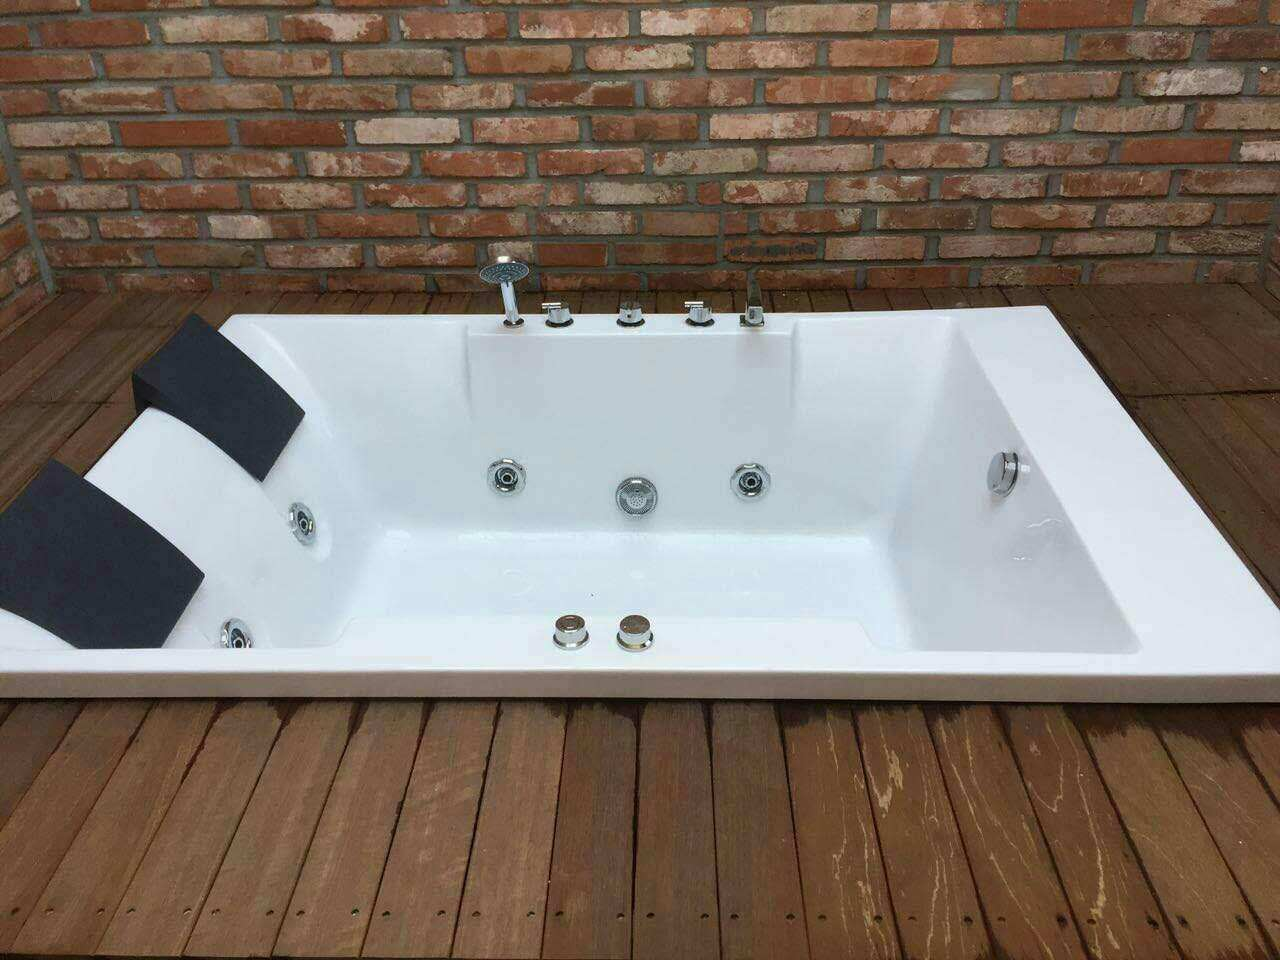 China Classical Design Bathtub Jacuzzi for Two Person (732) Photos ...